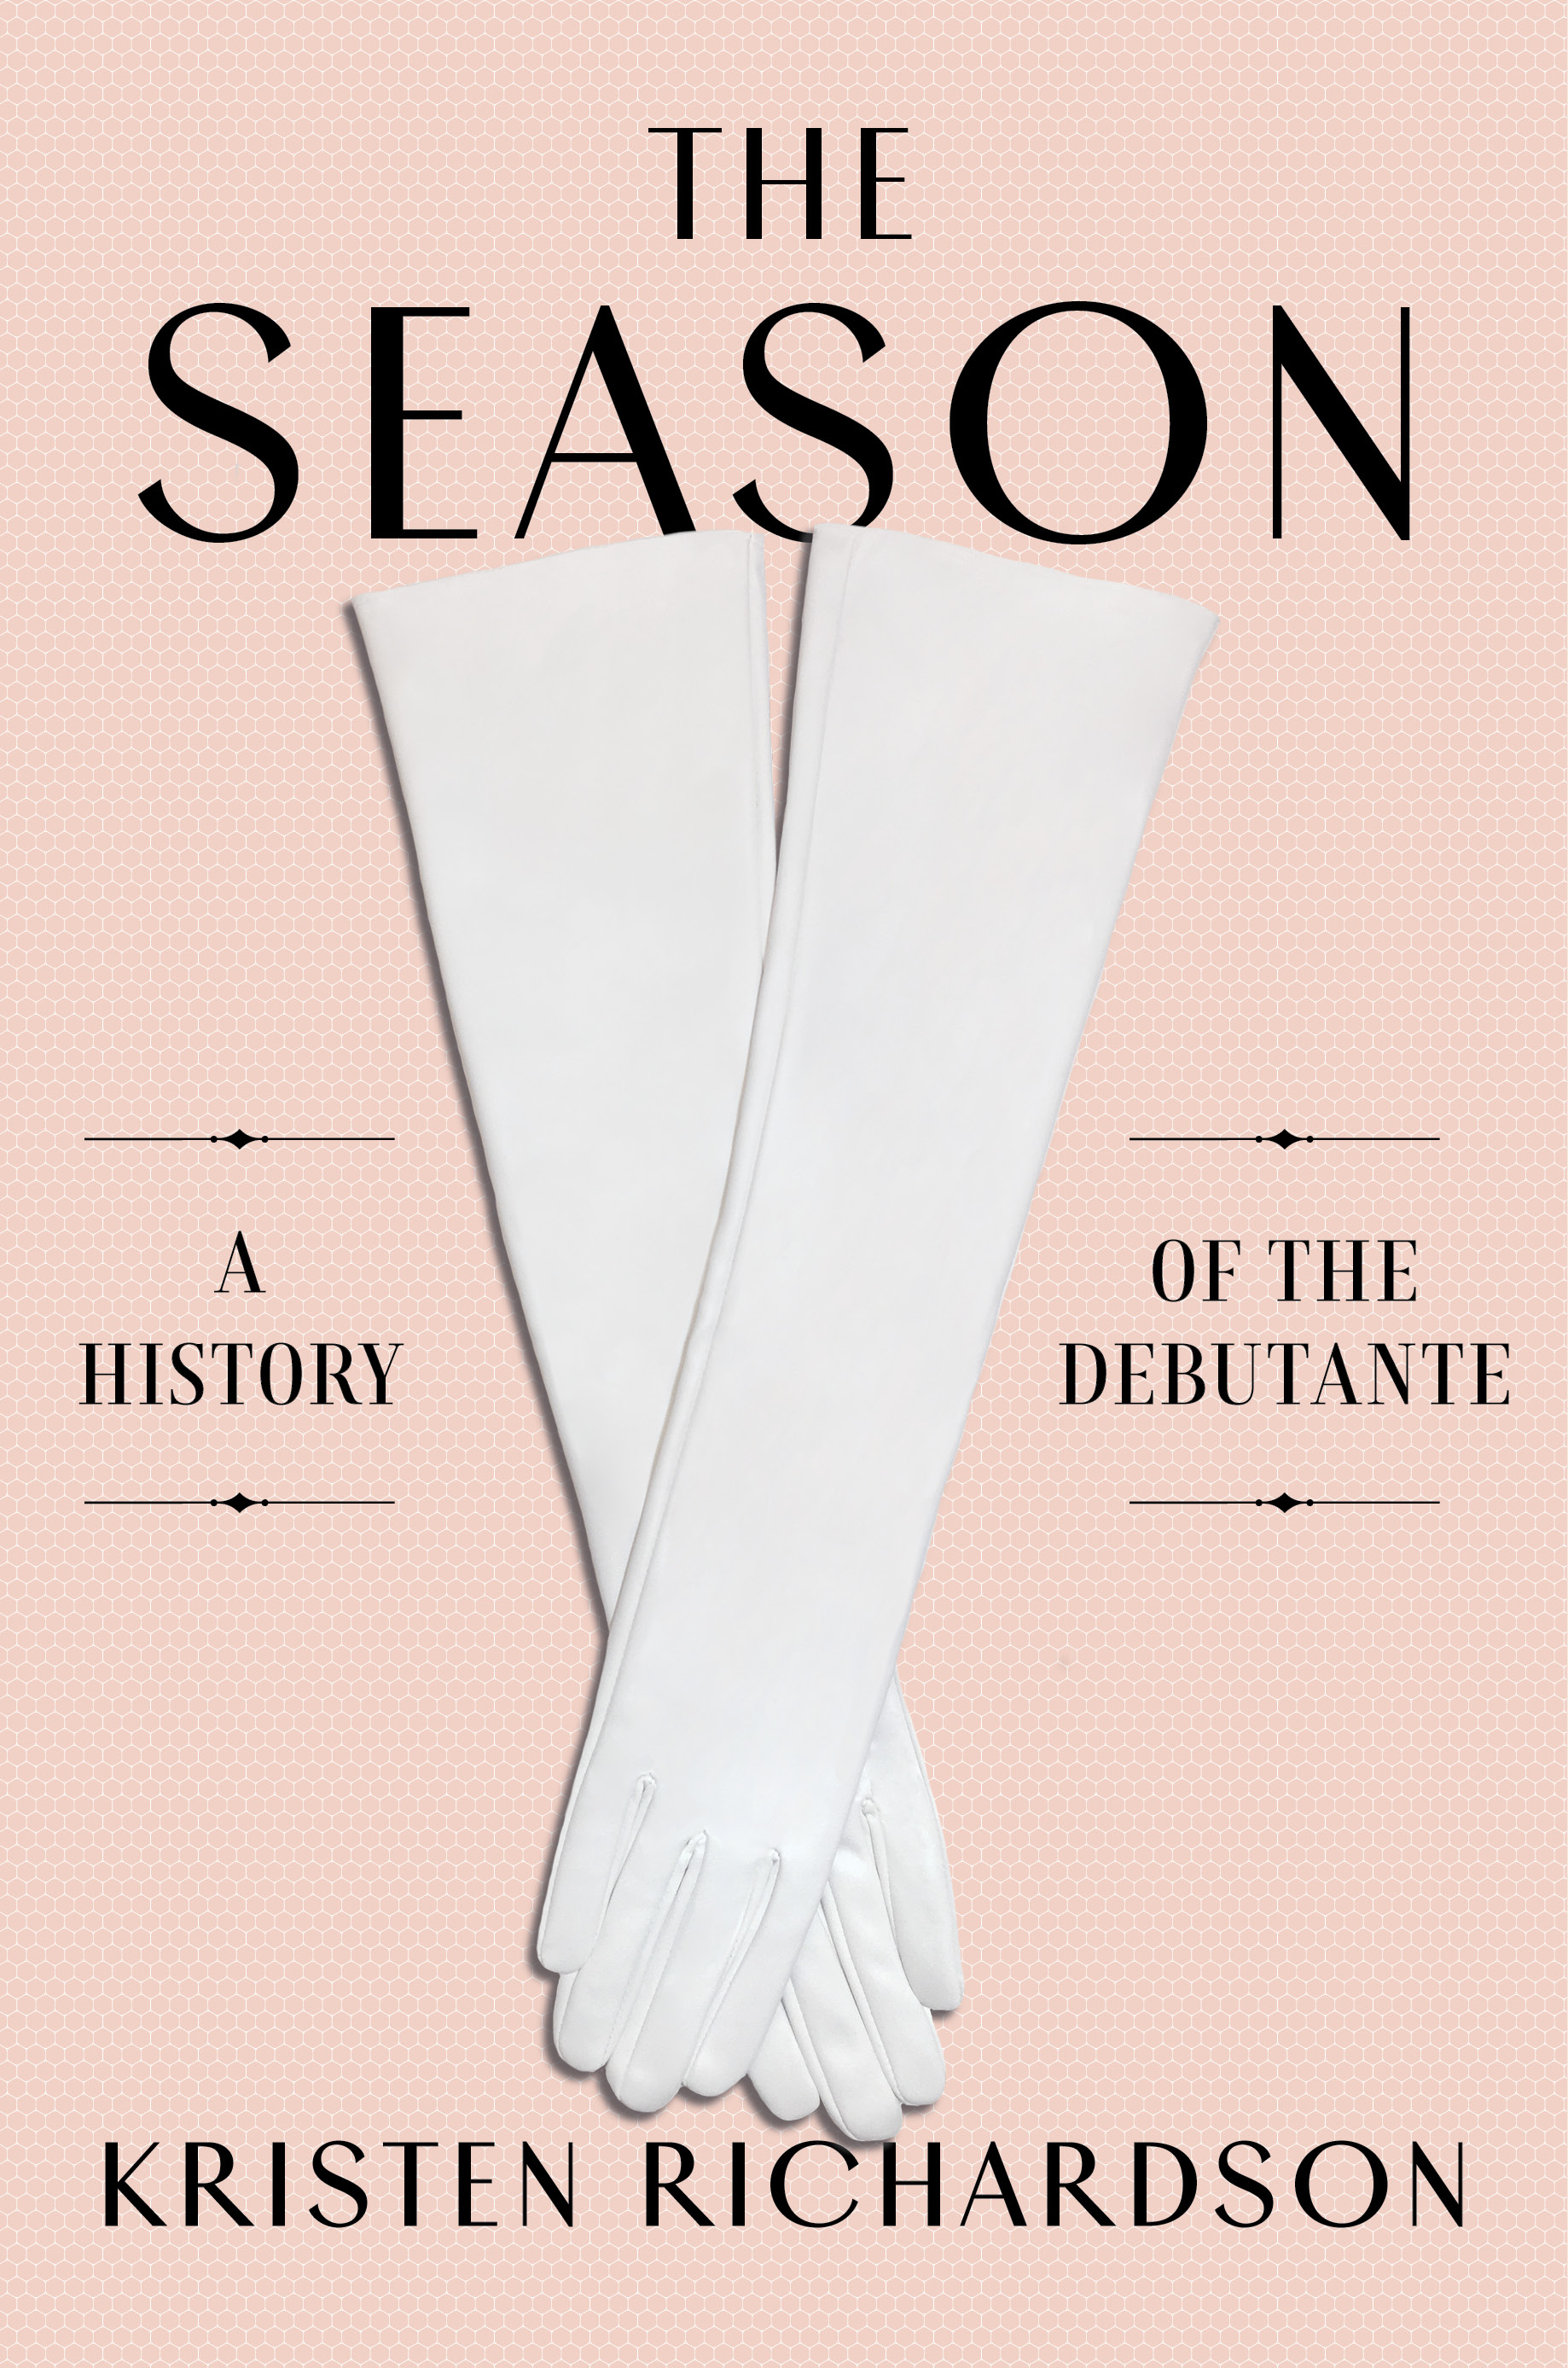 Book Launch: The Season by Kristen Richardson in conversation with Angela Serratore